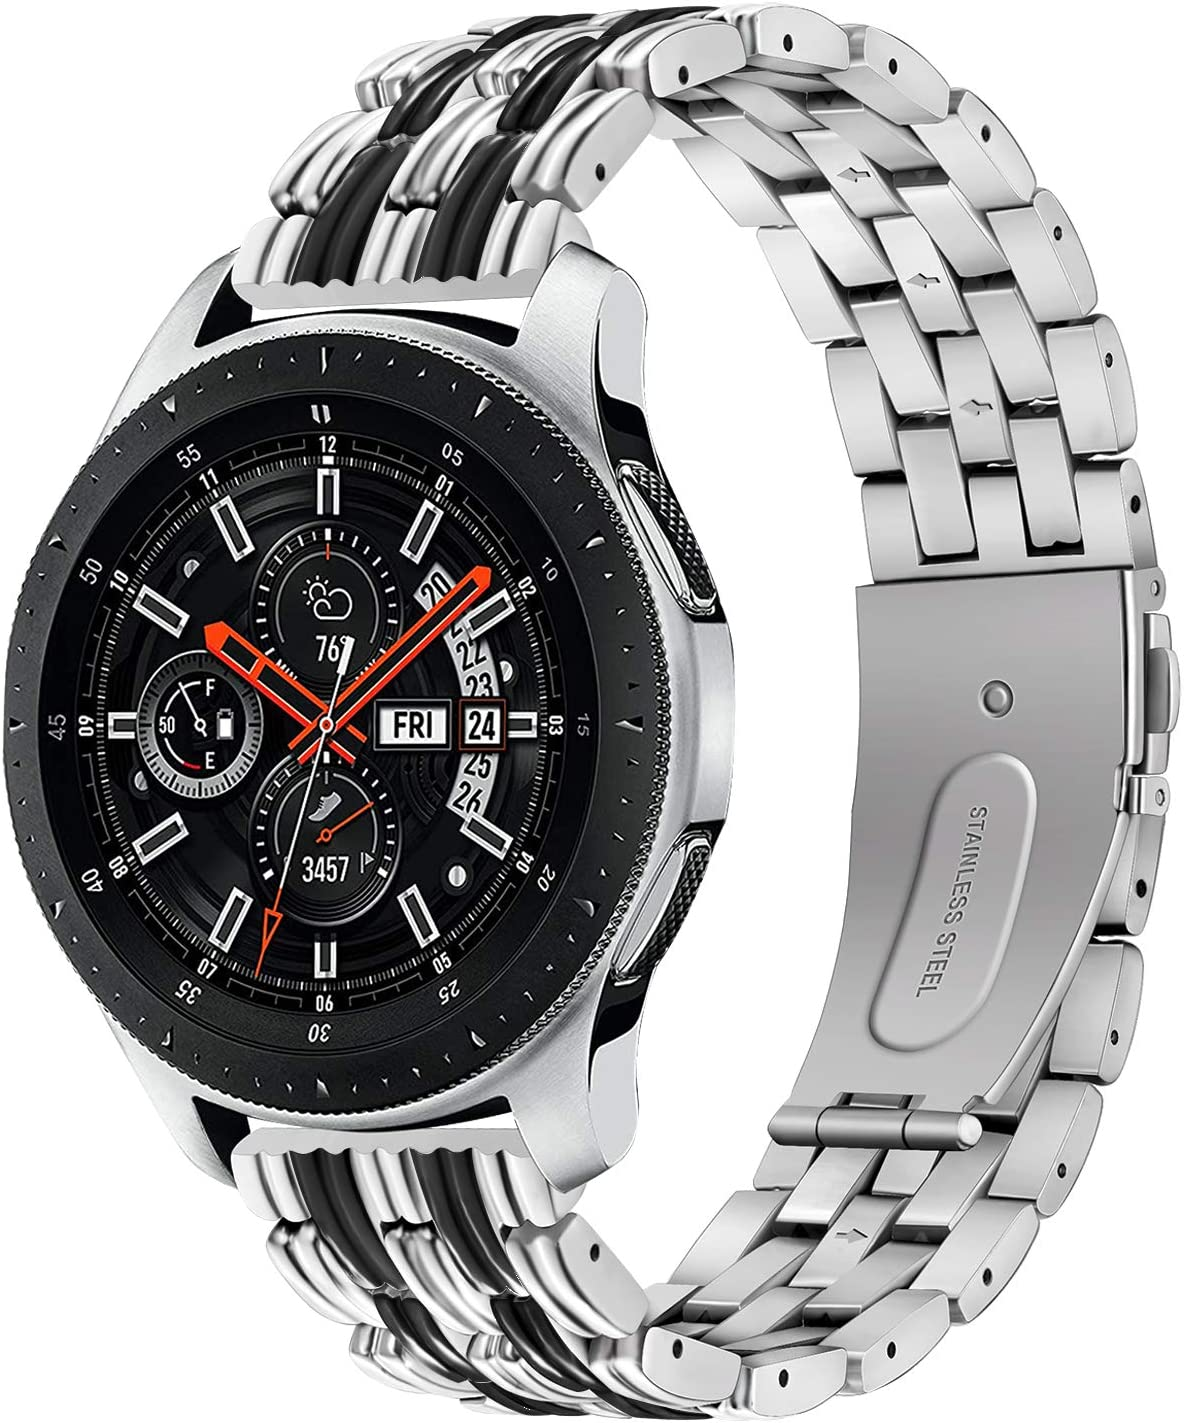 Galaxy Watch Silver 46mm Metal Strap Band forging Curved Link Bracelet Metal Band